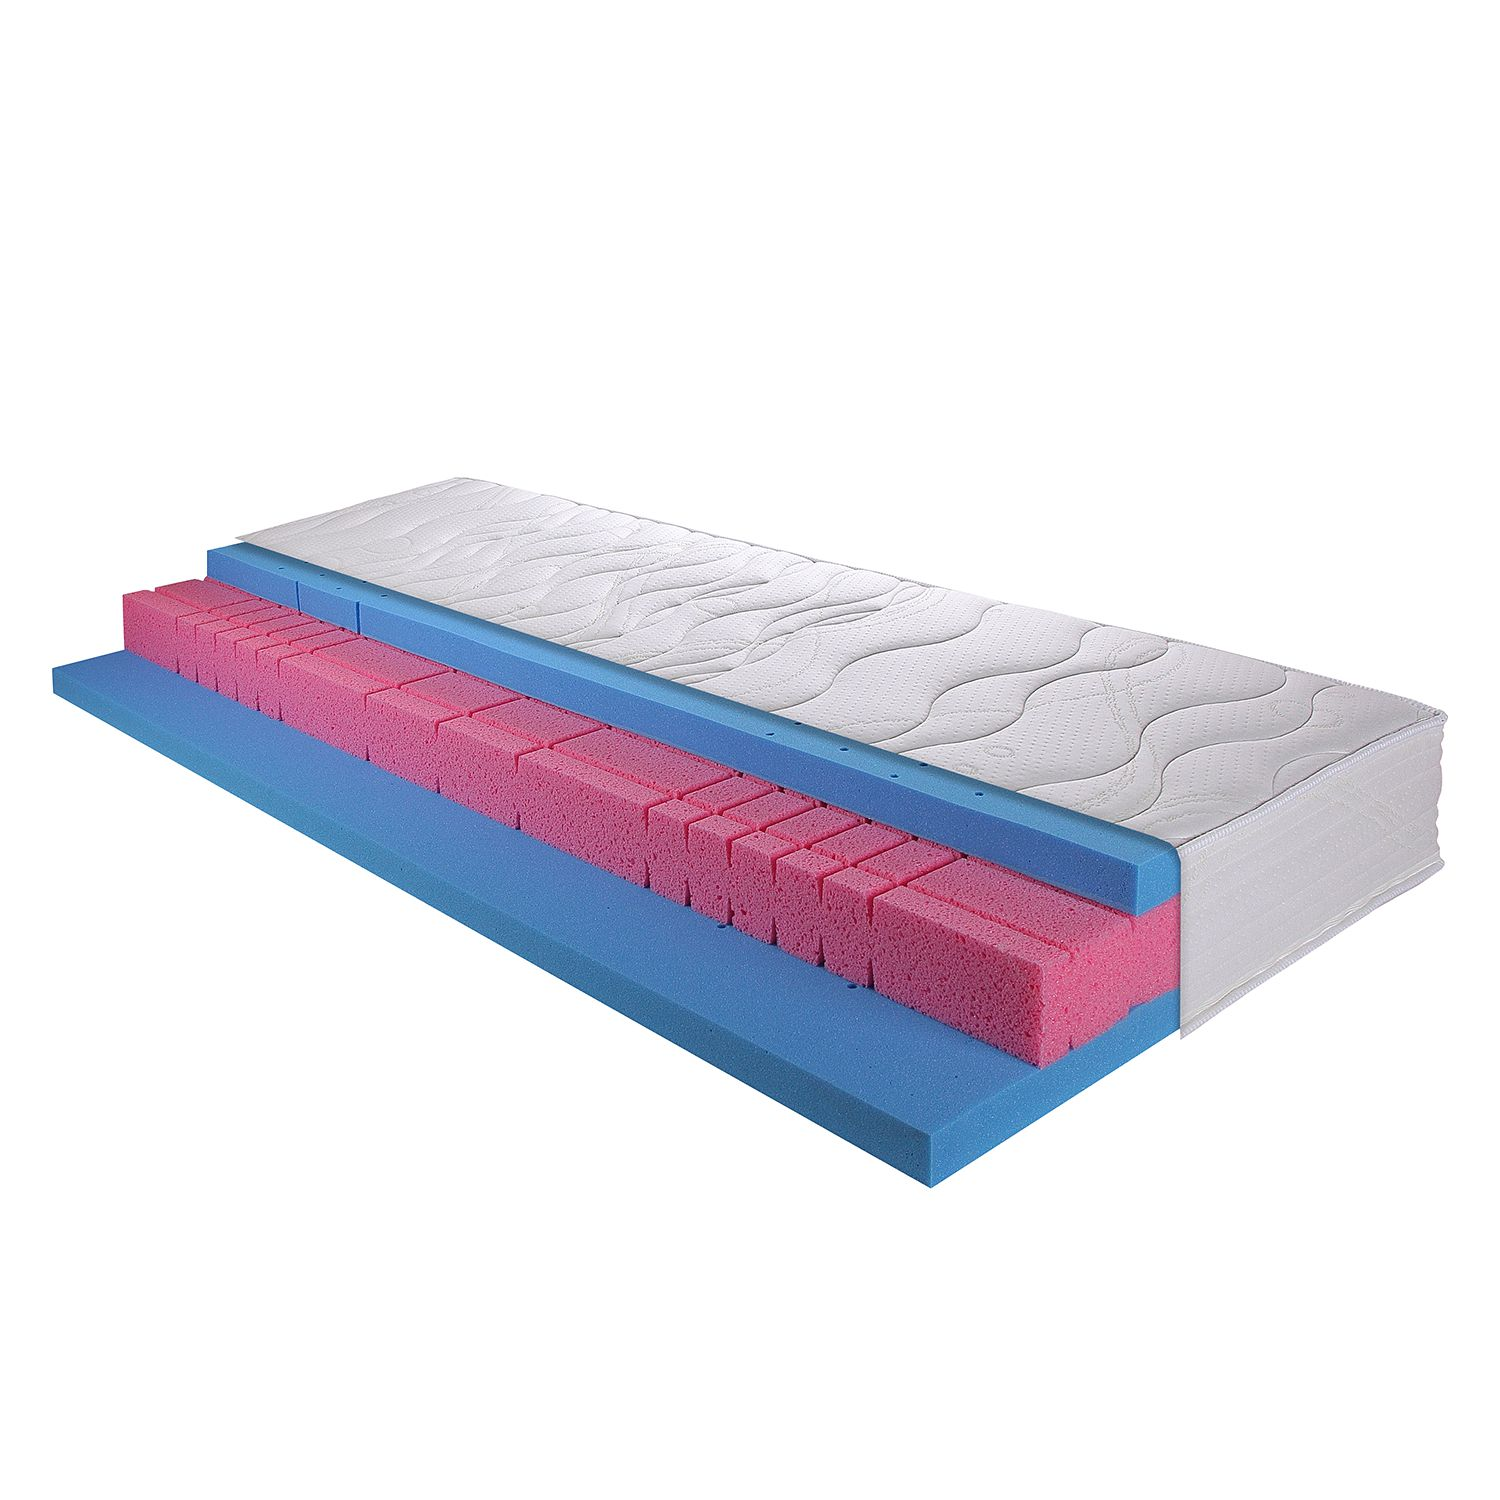 Koudschuimmatras met gel Ortho Air Gi, Breckle